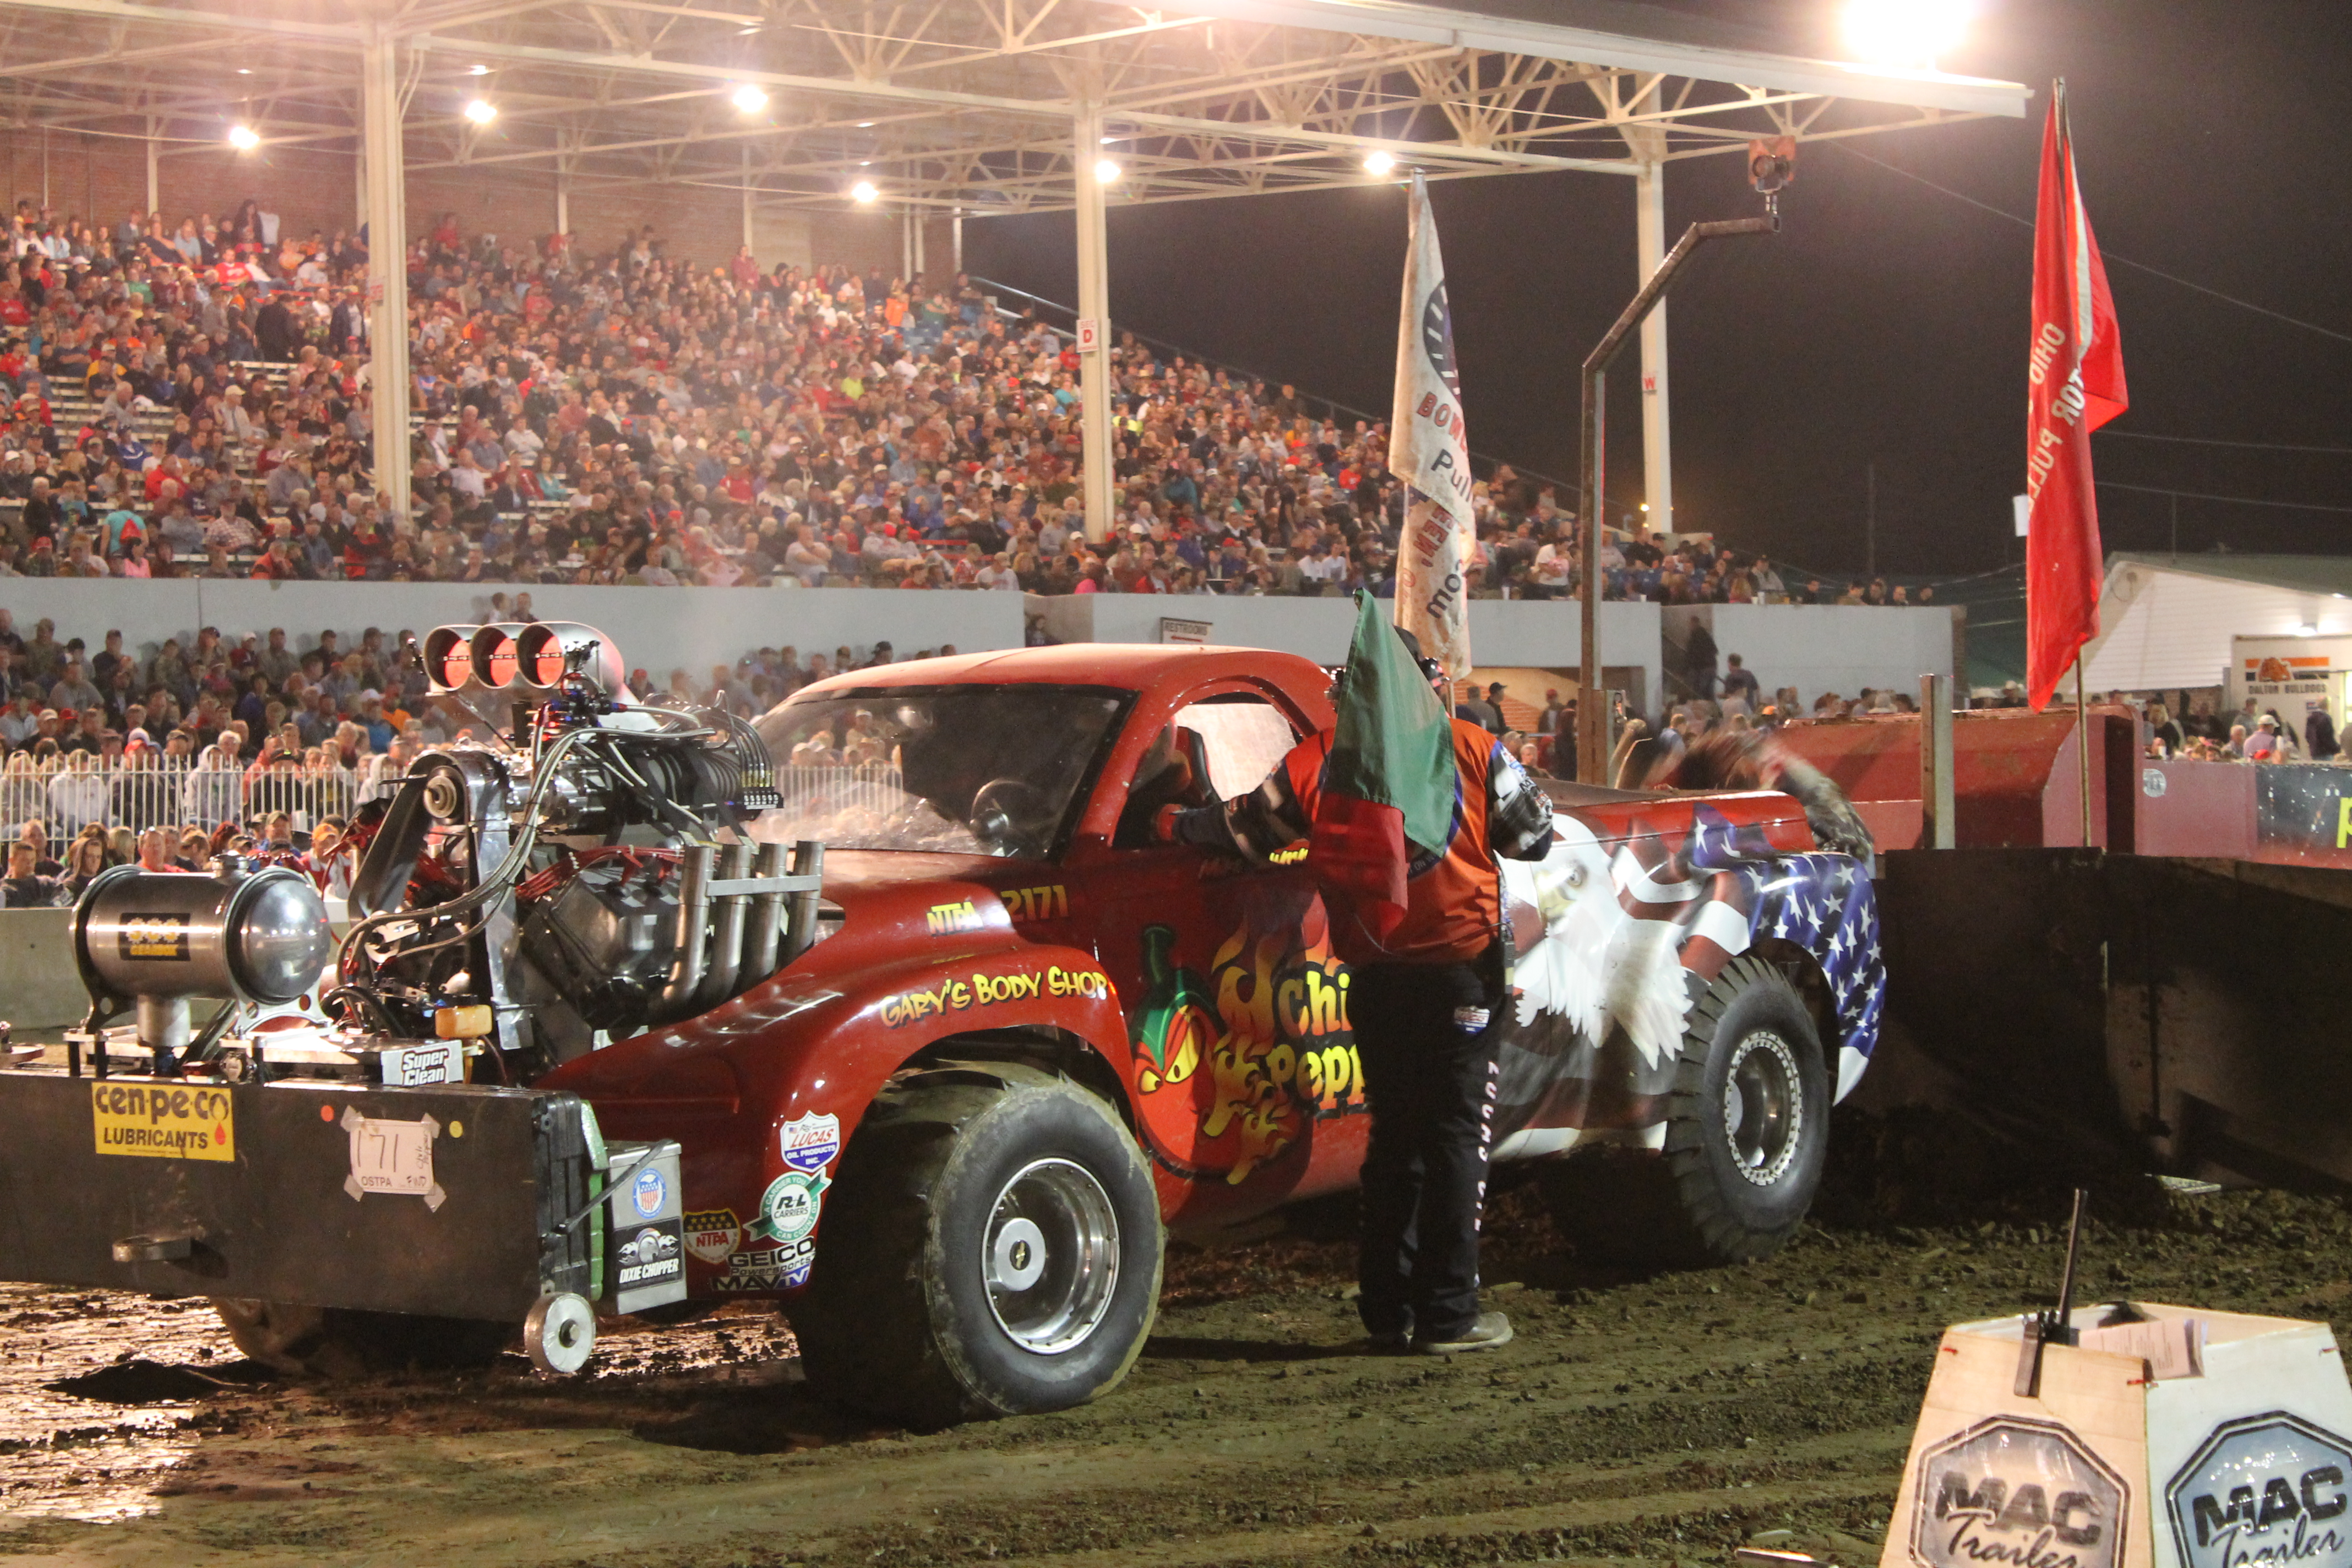 Summers' truck pulling is 'red hot' and 'twisted' - Farm and